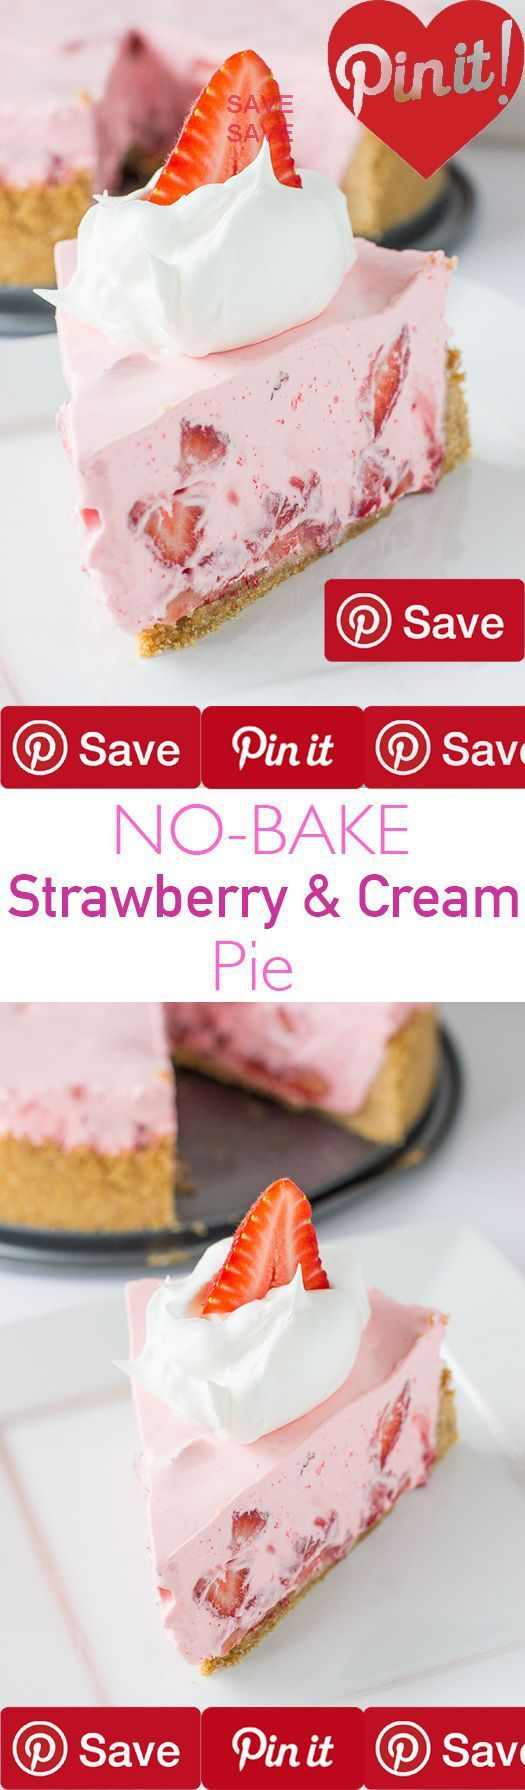 No-Bake Strawberry & Cream Pie This No-Bake Strawberry & Cream Pie is a family favorite around our house. Its light its refreshing and you dont even have to turn on cakez